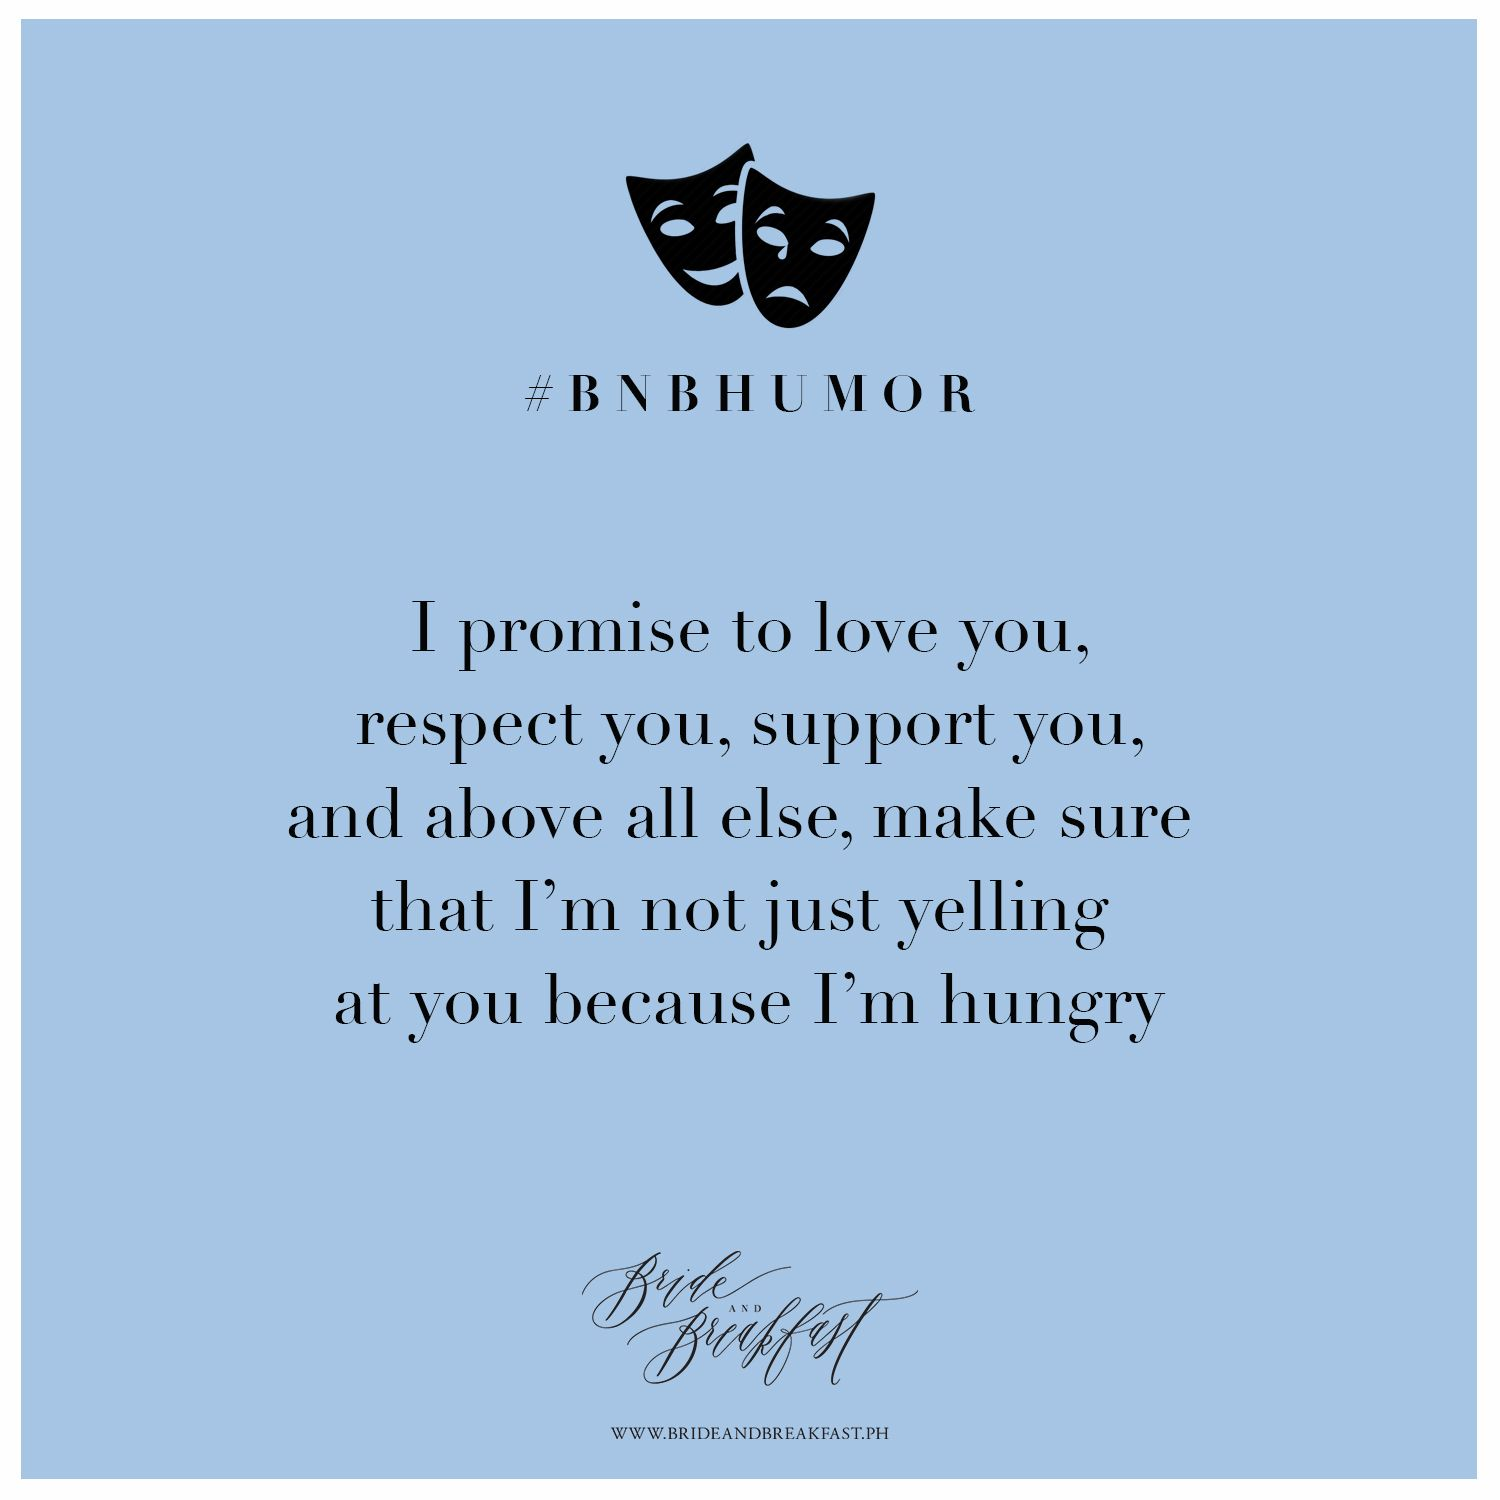 Love And Respect Quotes I Promise To Love You Respect You And Above All Else Make Sure